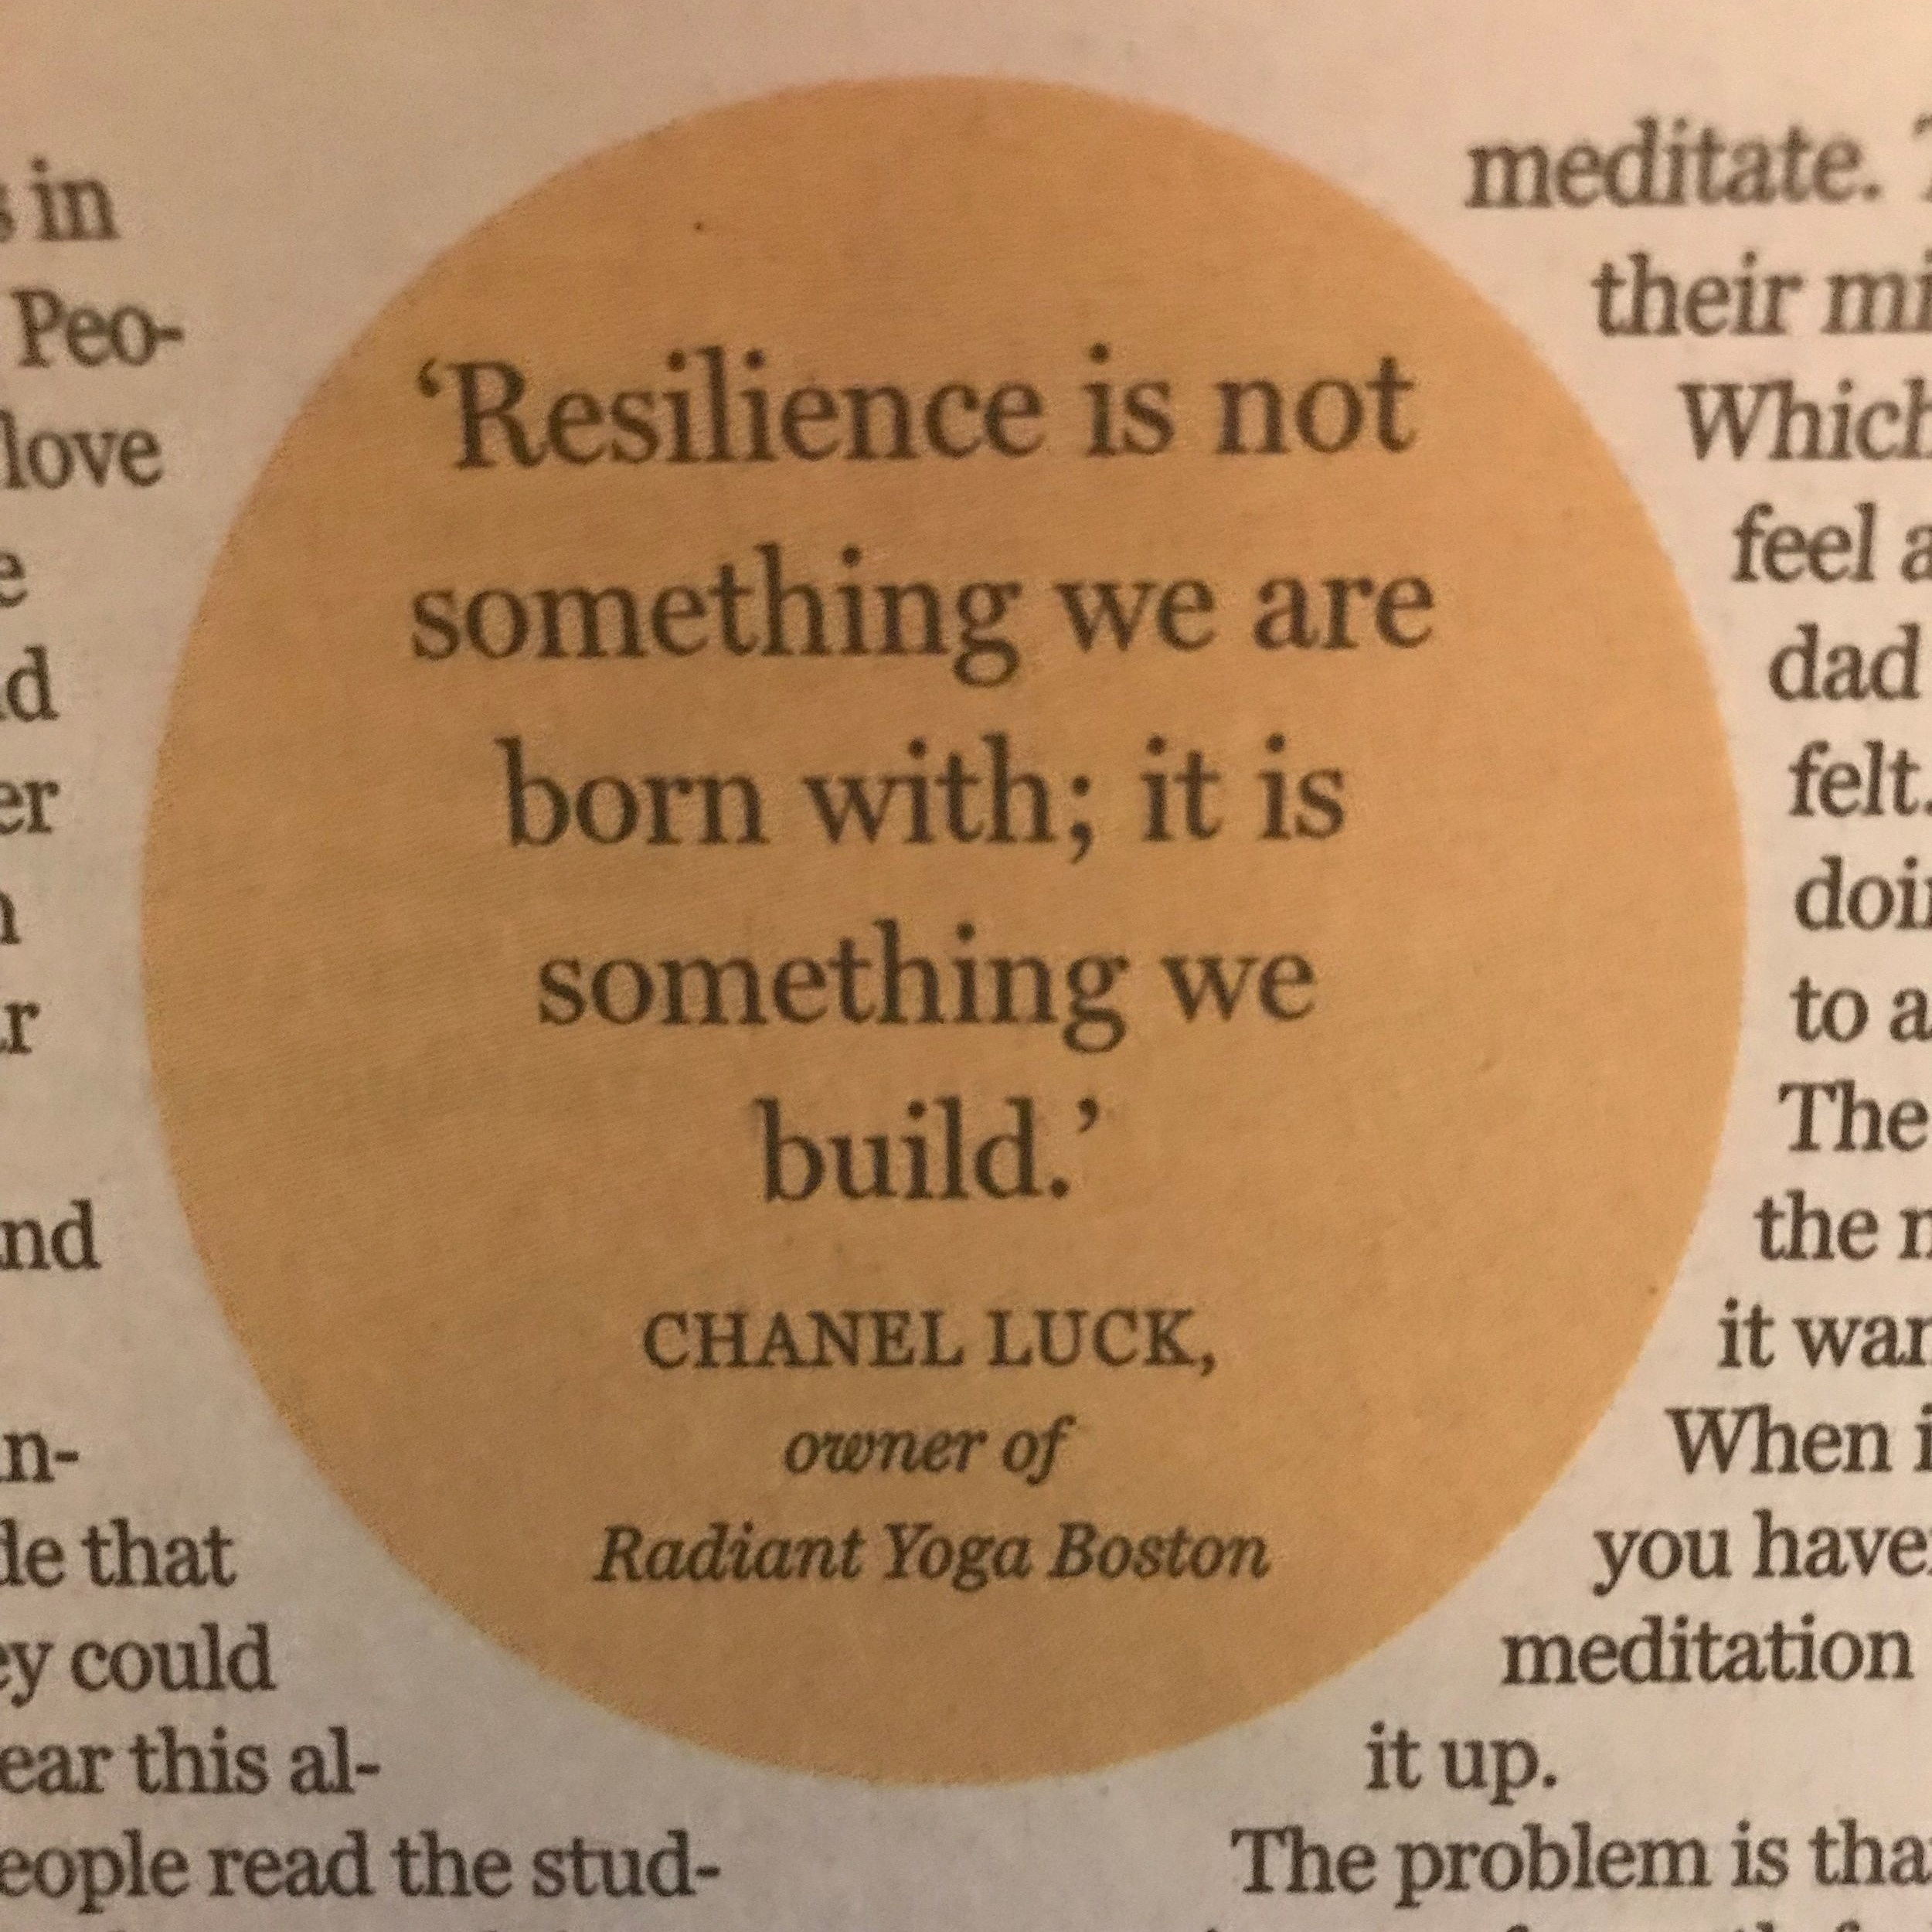 """""""It's OK to lack faith in your ability to do something, but what I have found is the importance of doing it anyway. Resilience is not something we are born with; it is something we build,"""" said Chanel Luck, owner of the yoga studio Radiant Yoga Boston in South Boston, who has wrestled with all of the challenges mentioned above."""